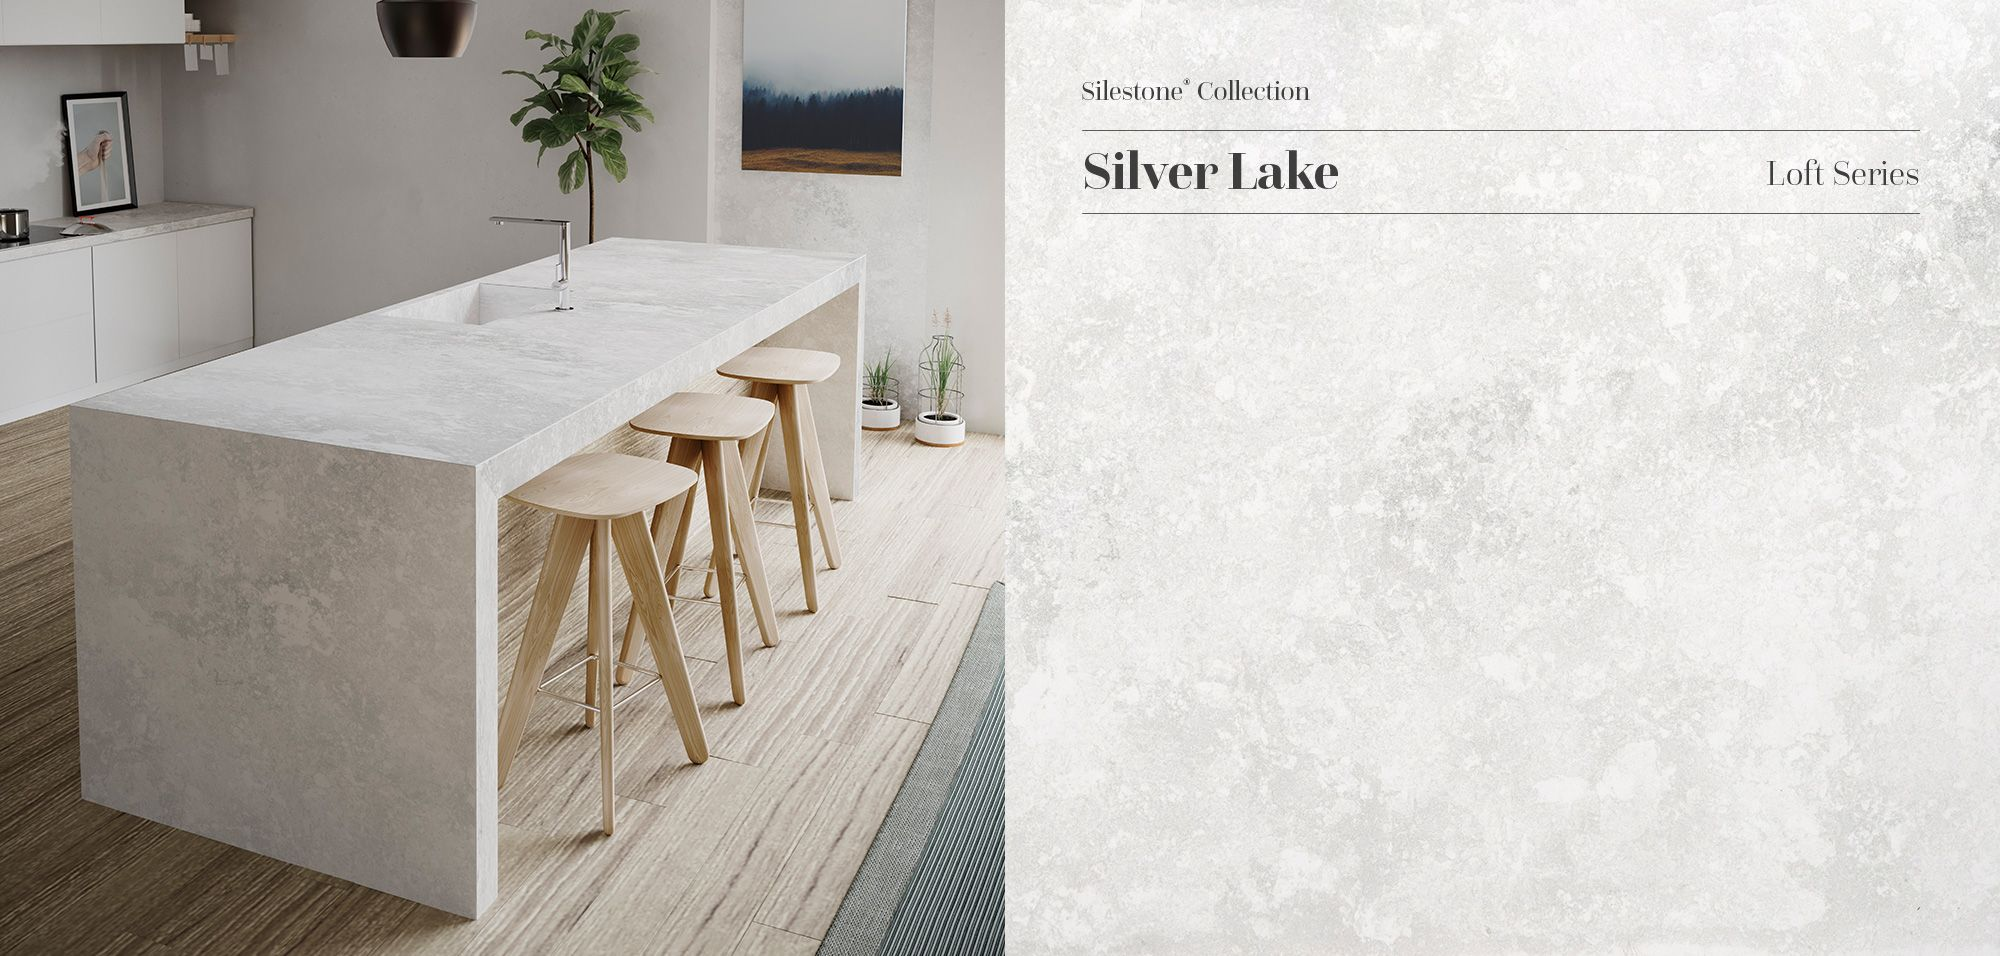 We Are Glad To Present The New Silestone Silver Lake A Unique Original And Daring Kitchen Inspiration Modern Kitchen Countertops Kitchen Remodel Countertops